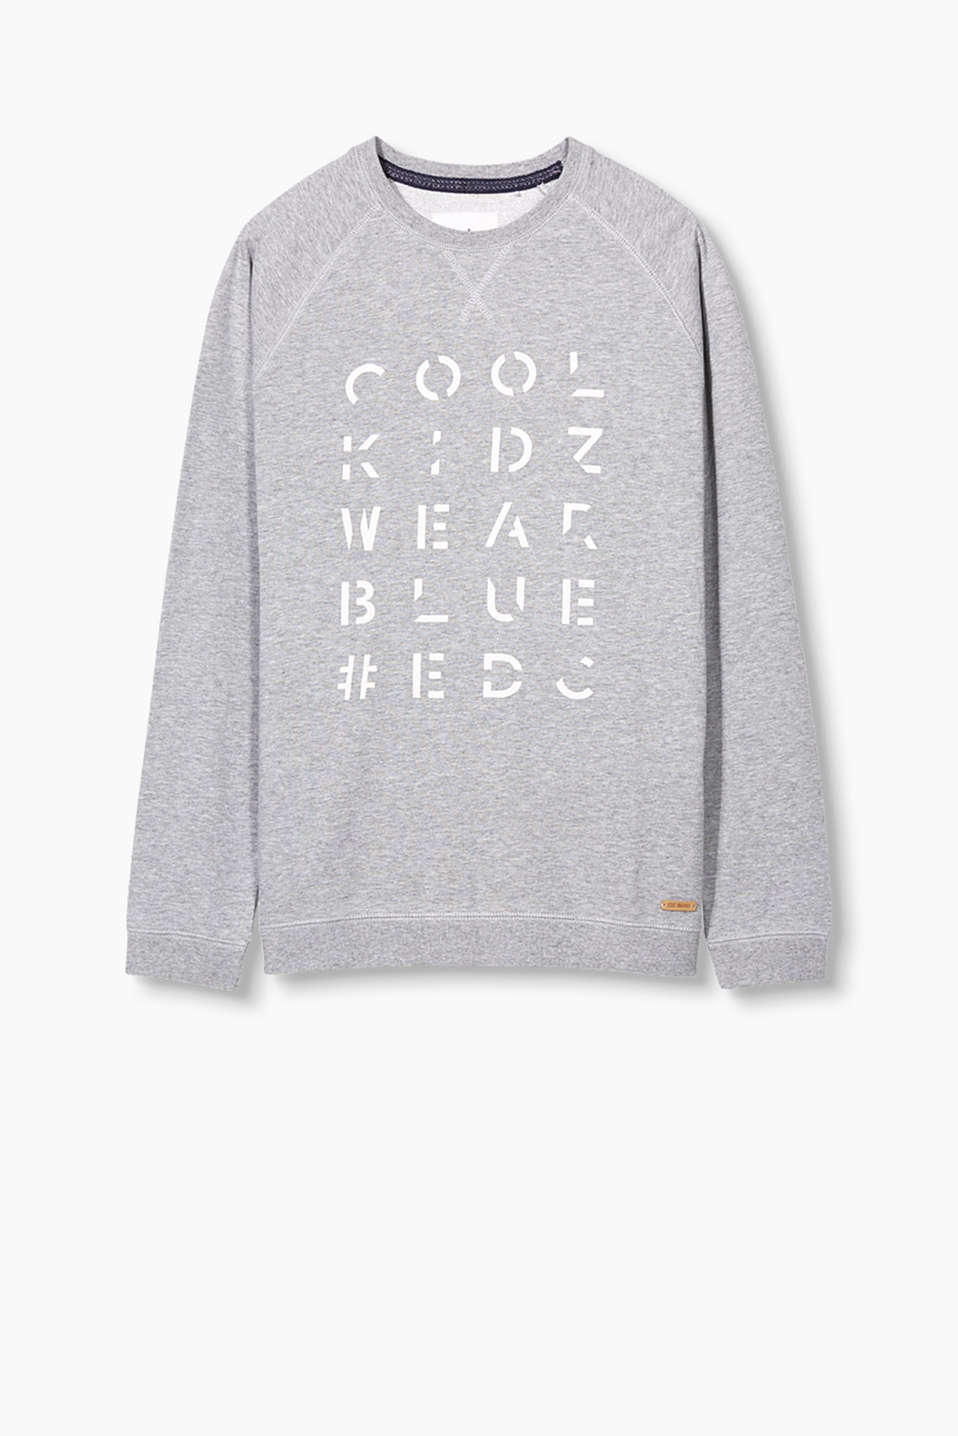 Slub-effect sweatshirt with a printed statement